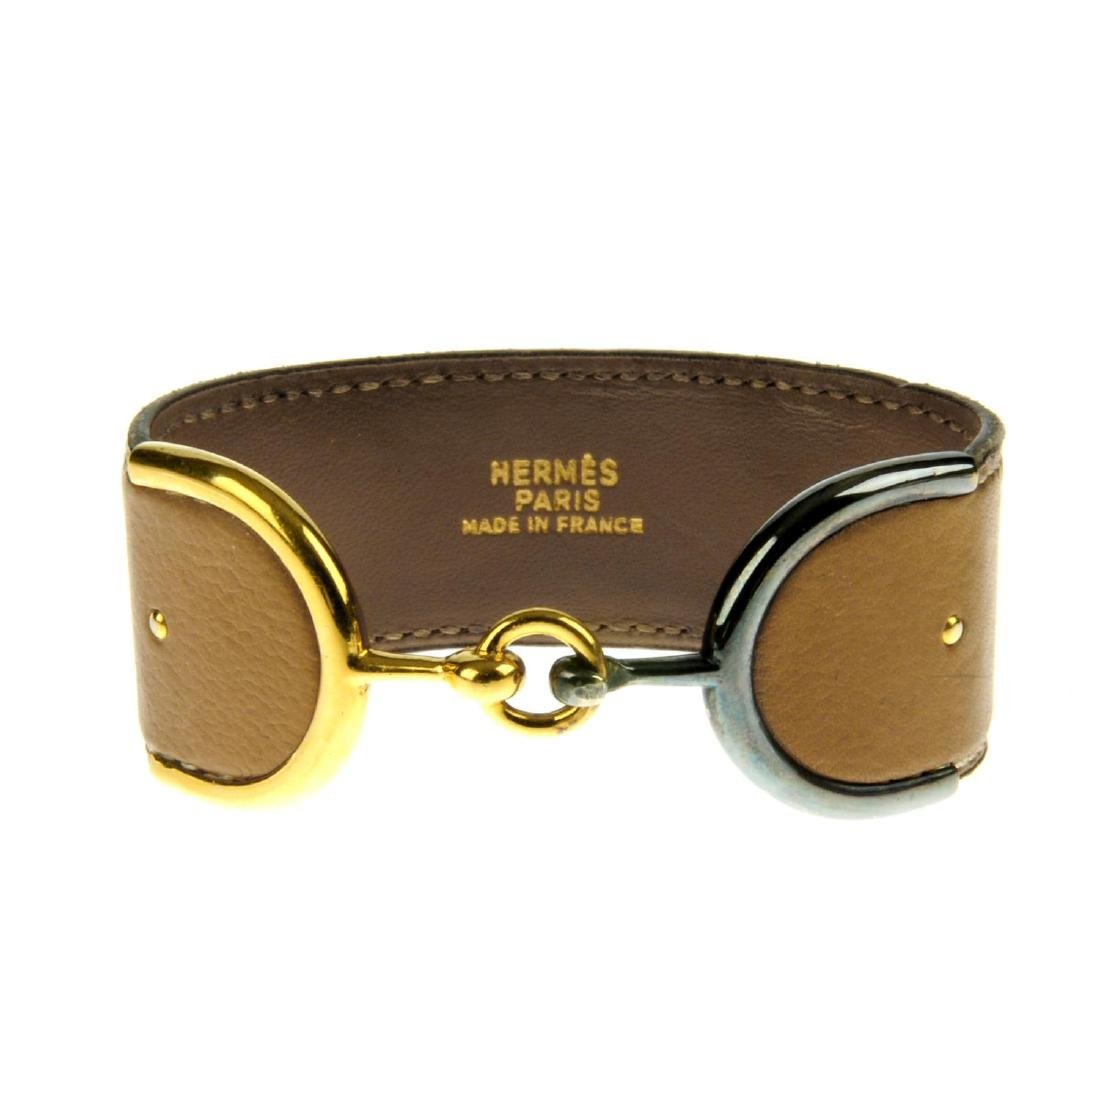 HERMÈS - a bracelet. The tan leather band stitched to